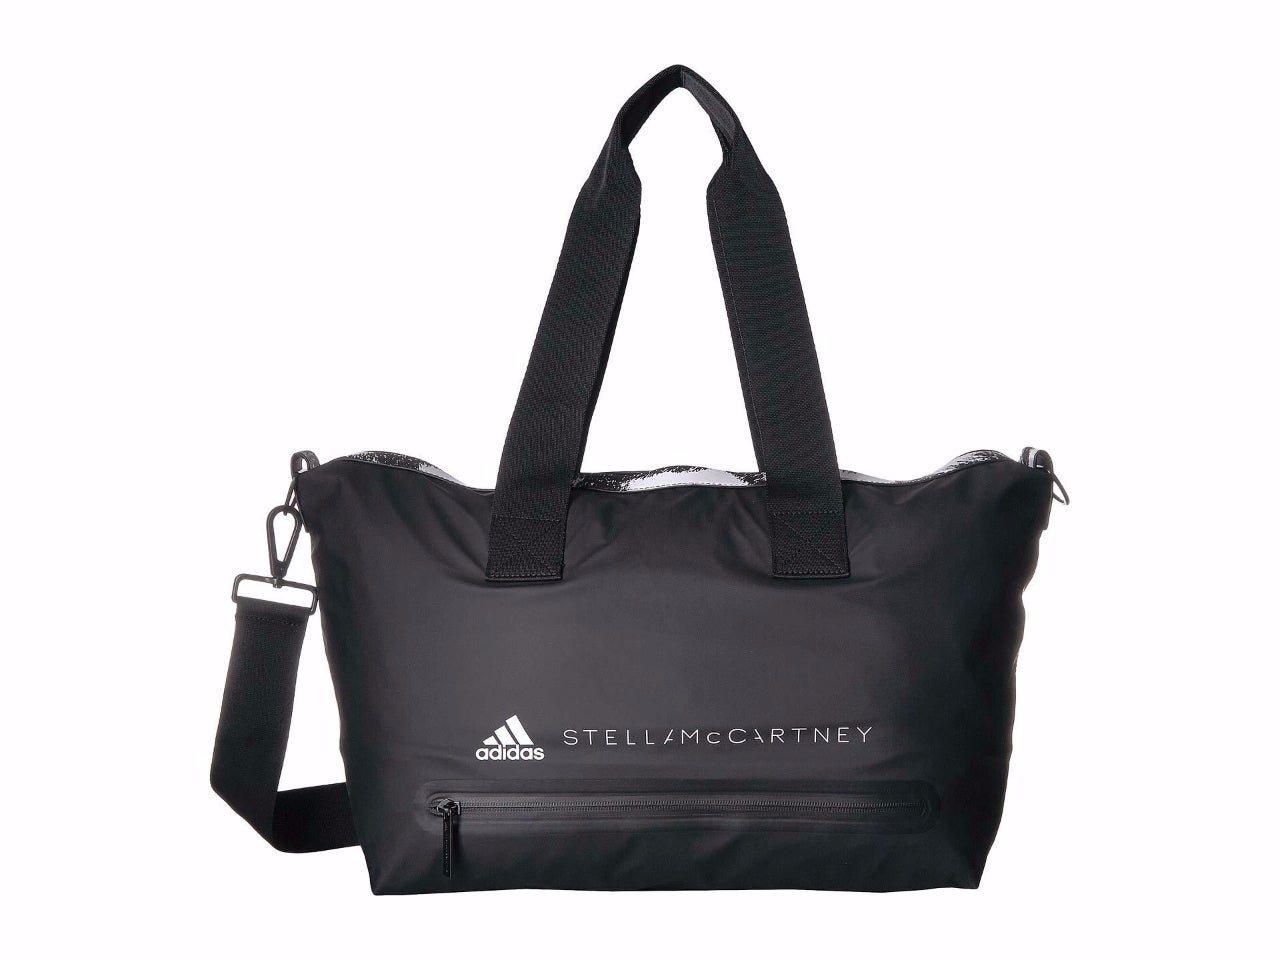 adidas-by-stella-mccartney-BlackWhite-Small-Studio-Bag-blackblackblack-Bags